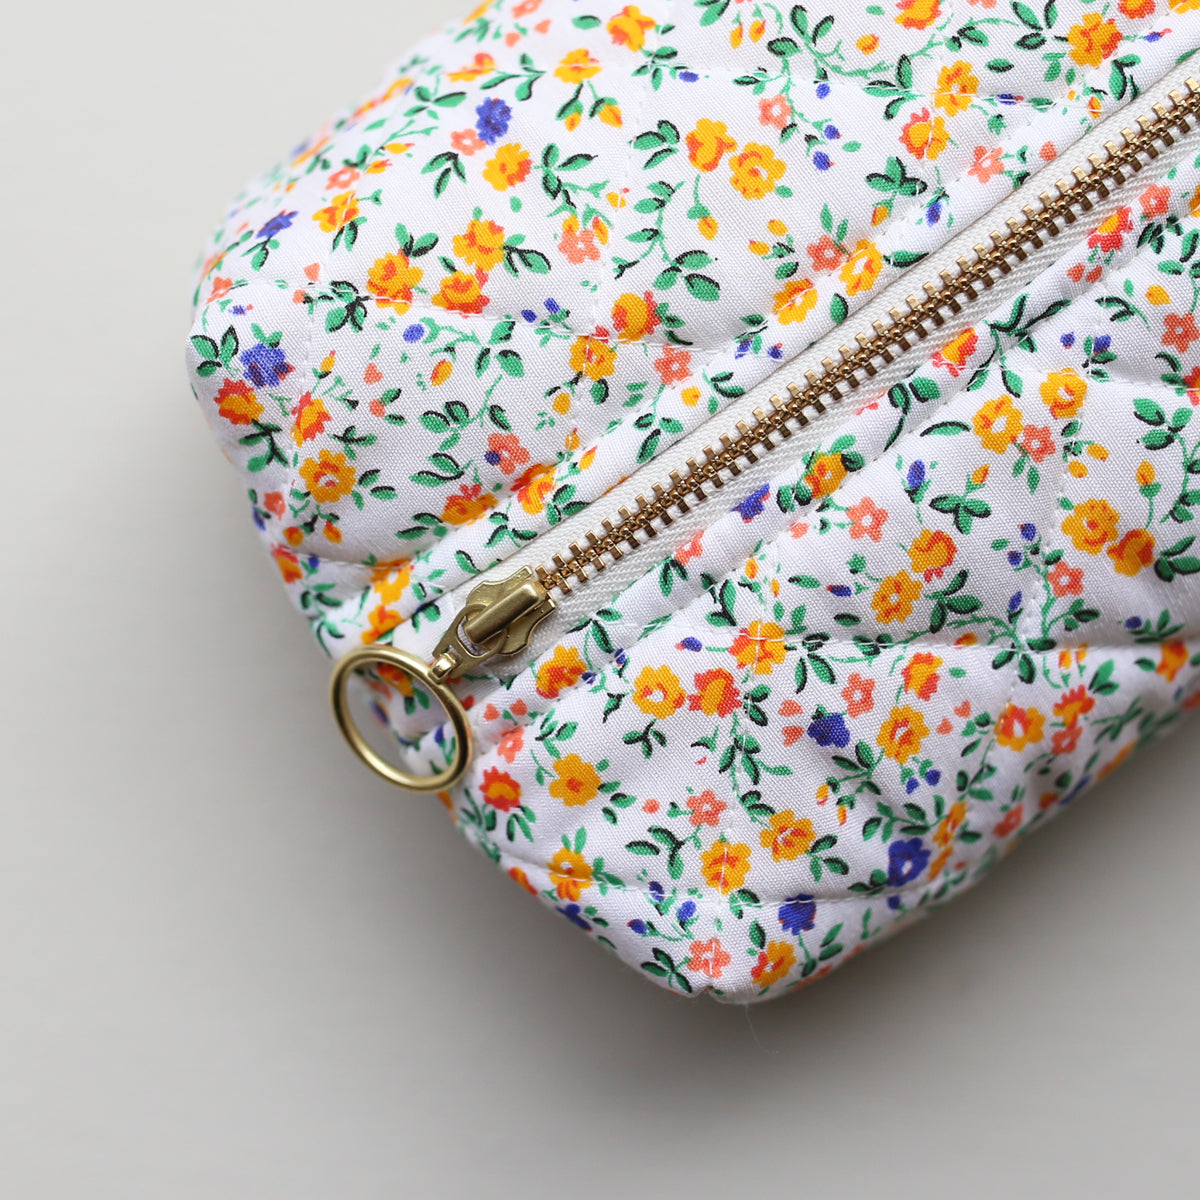 MAKEUP BAG // ORANGE FLOWERS